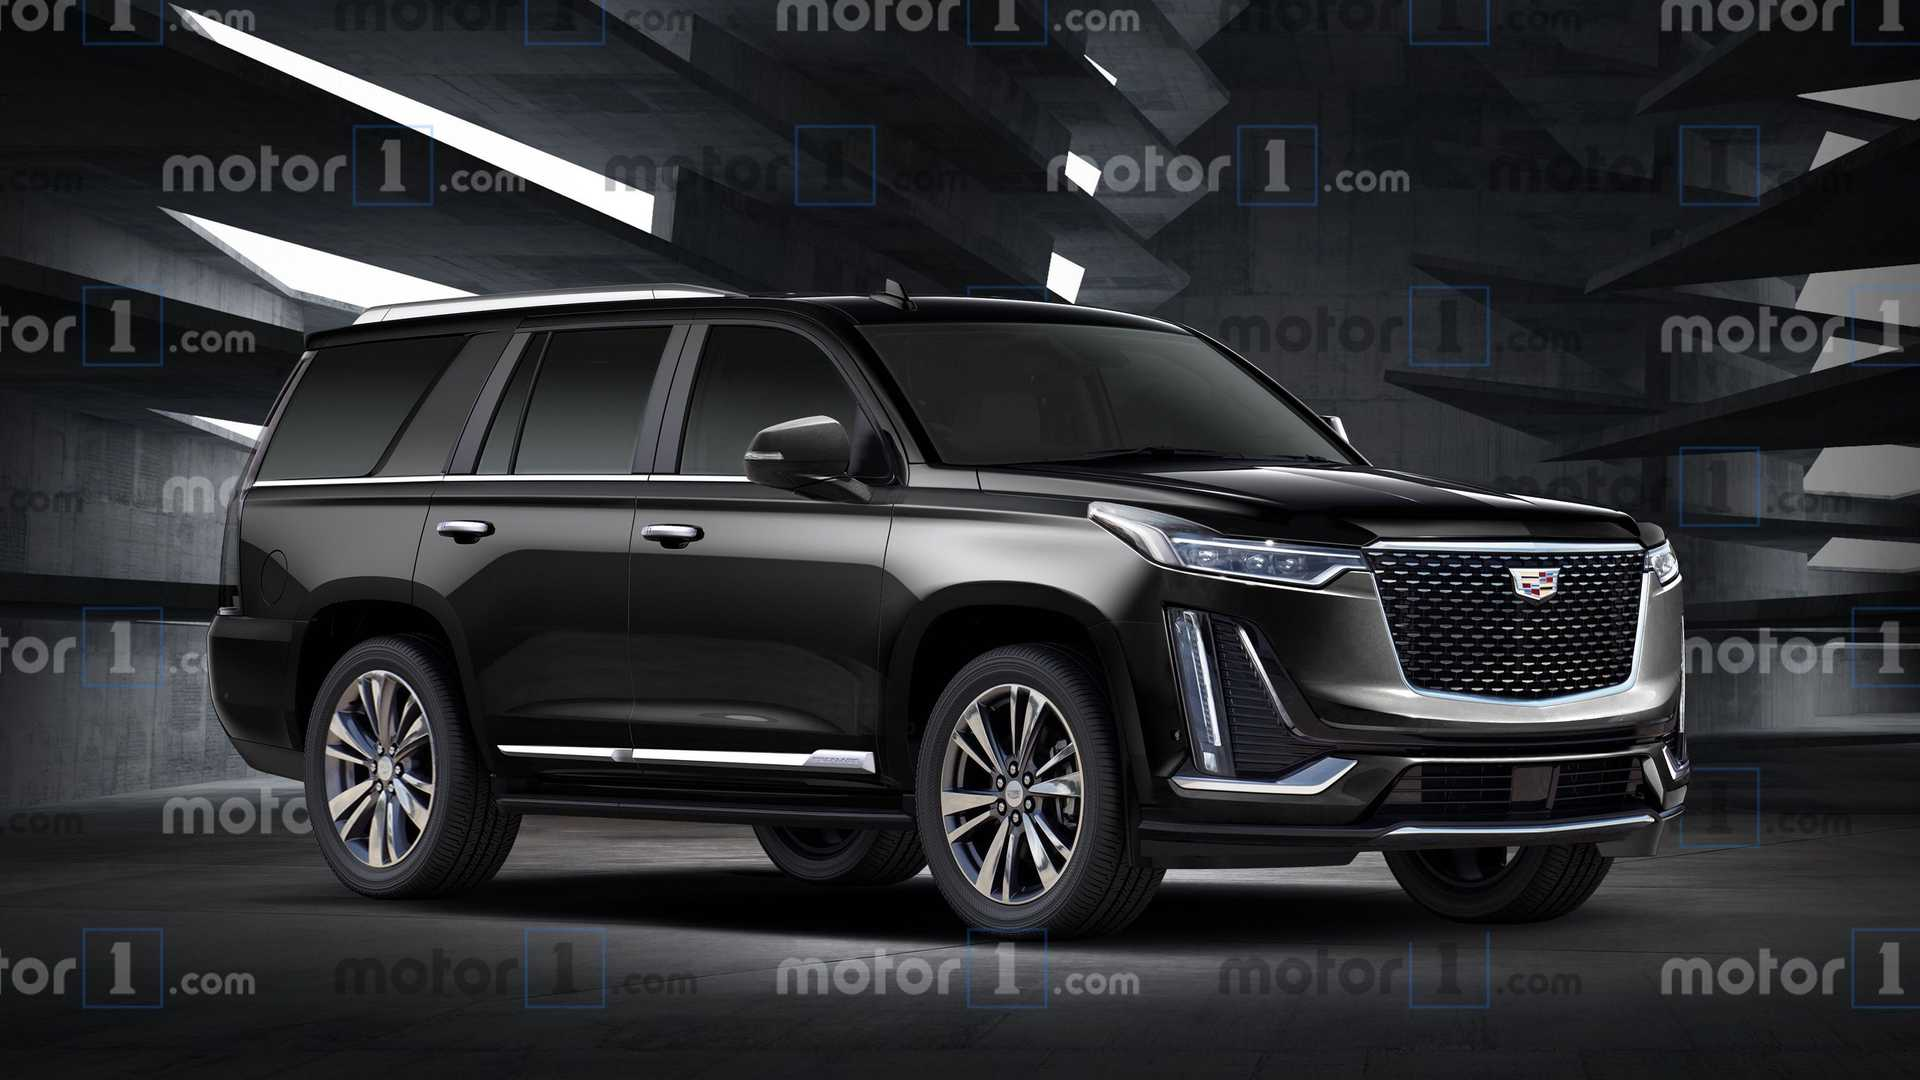 26 Concept of 2020 Cadillac Escalade News Rumors by 2020 Cadillac Escalade News